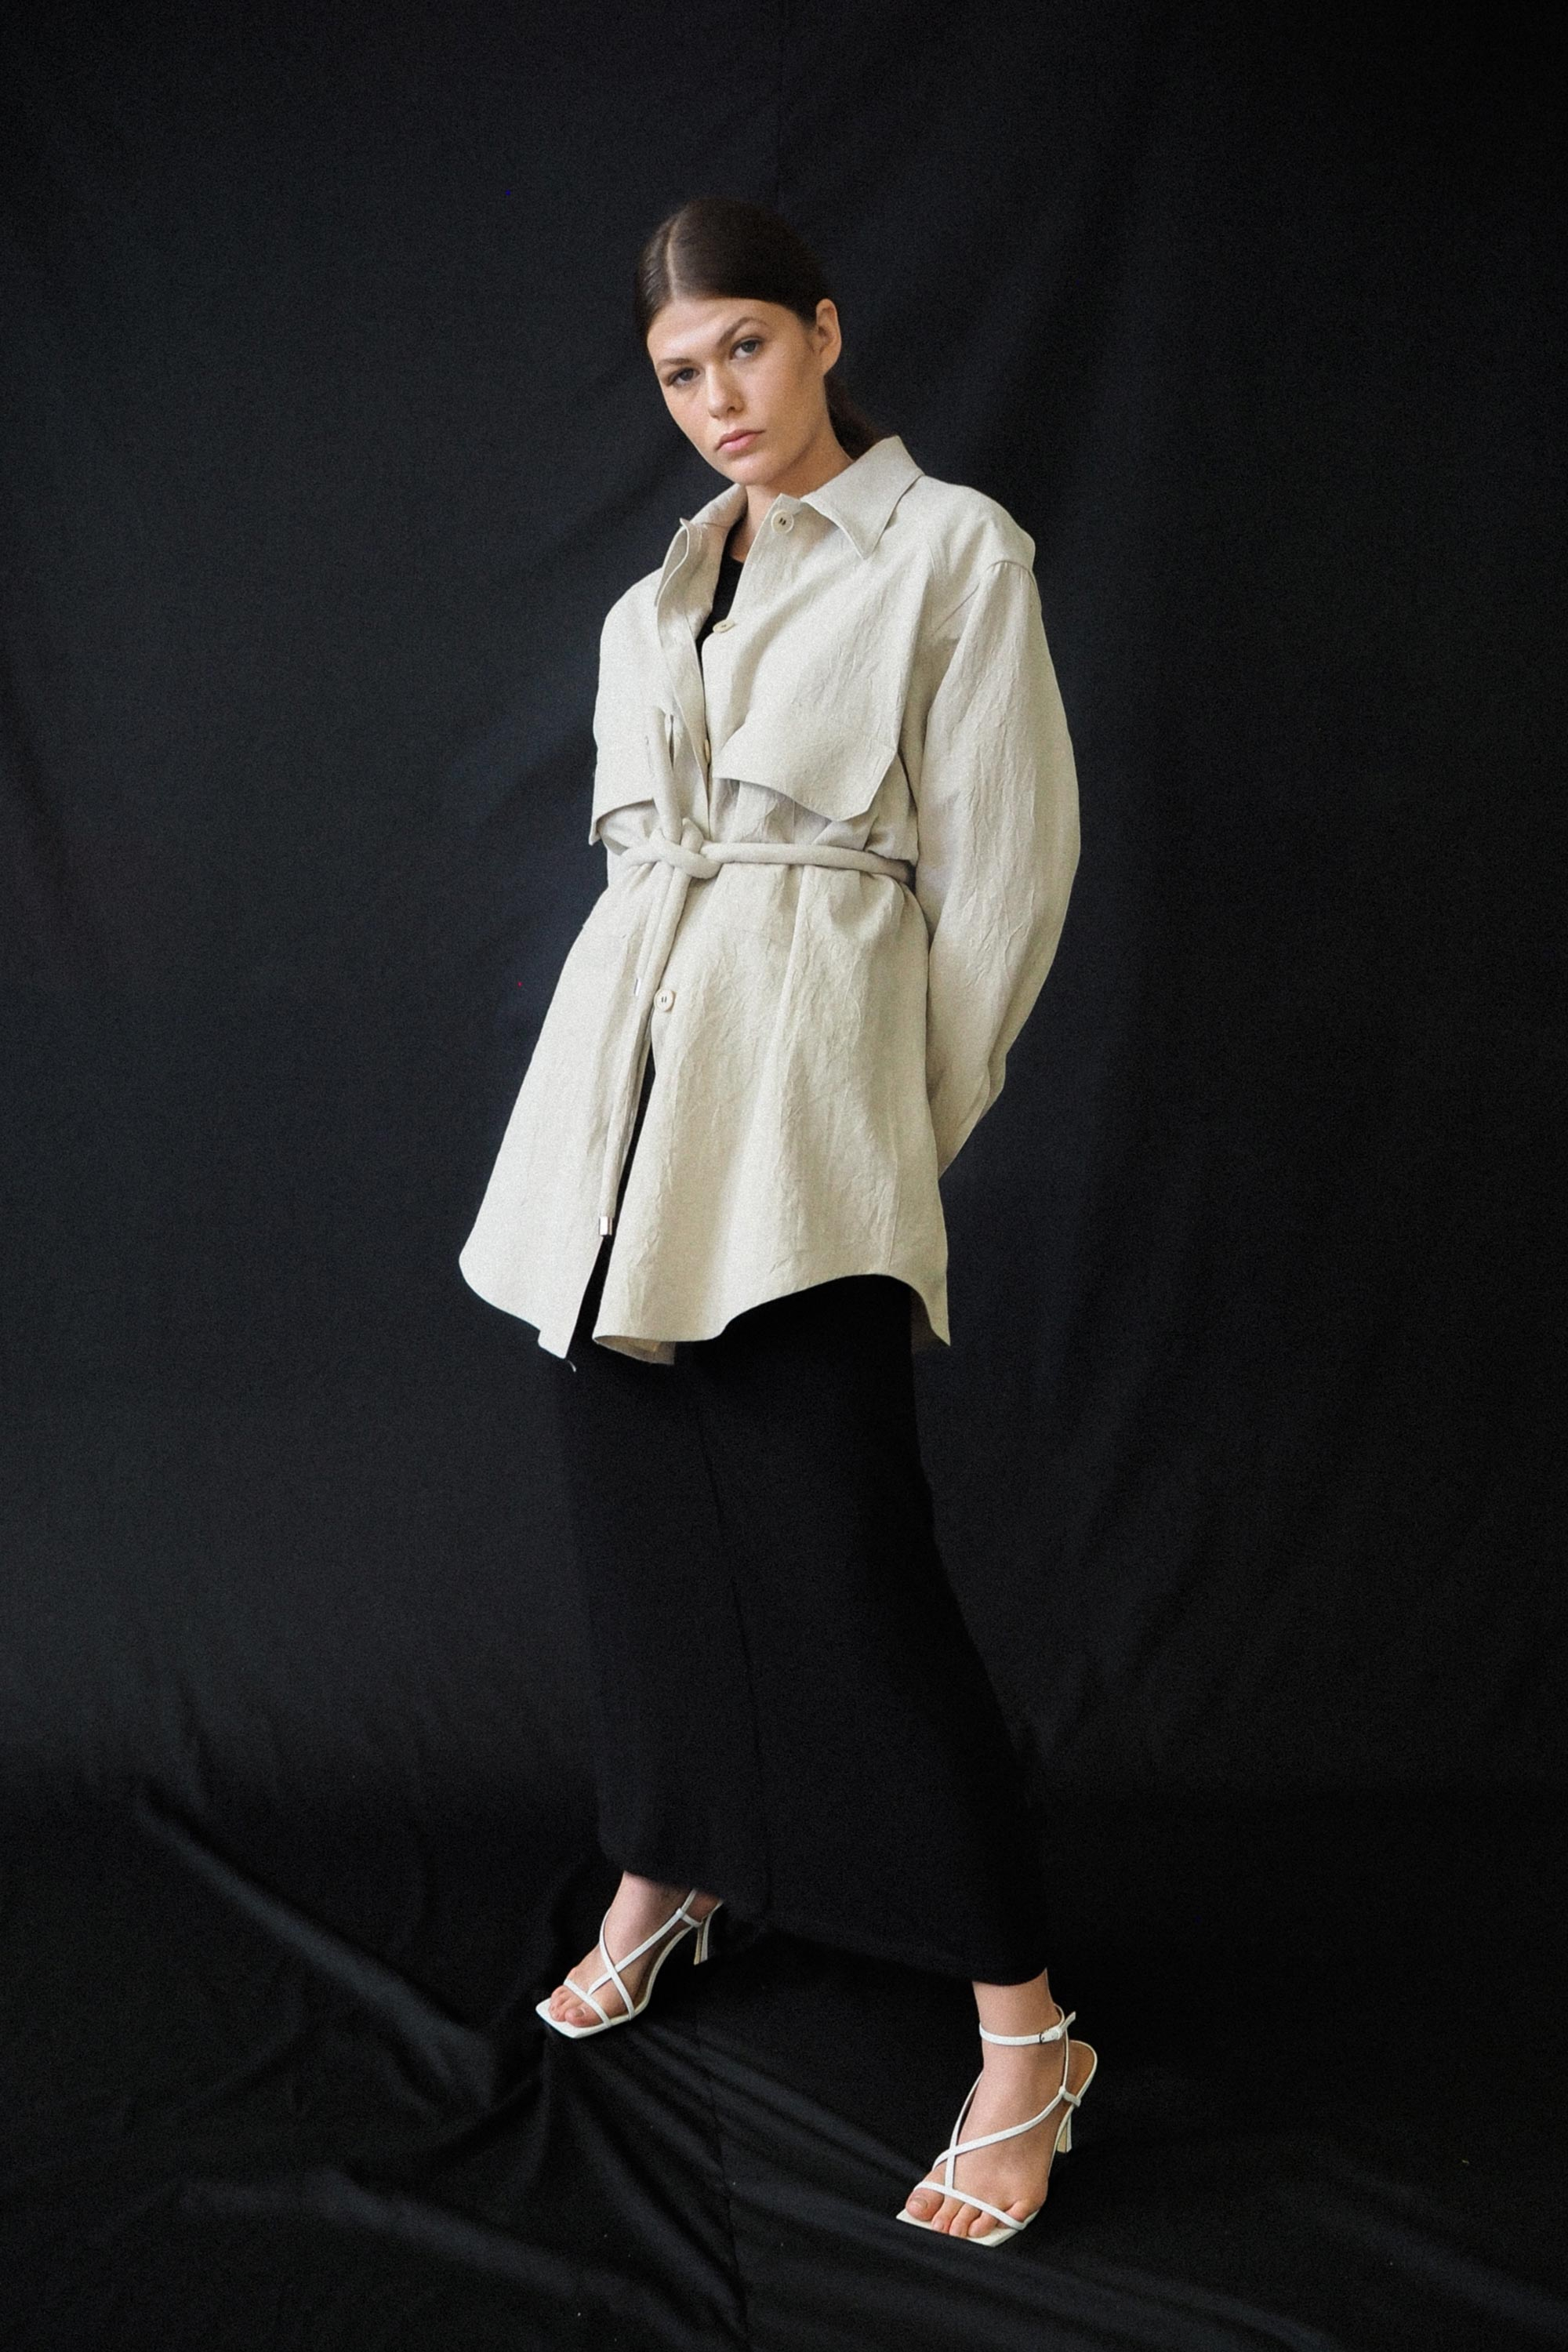 Field Shirt Ricochet SS20 Collection NZ Sustainable Fashion Design